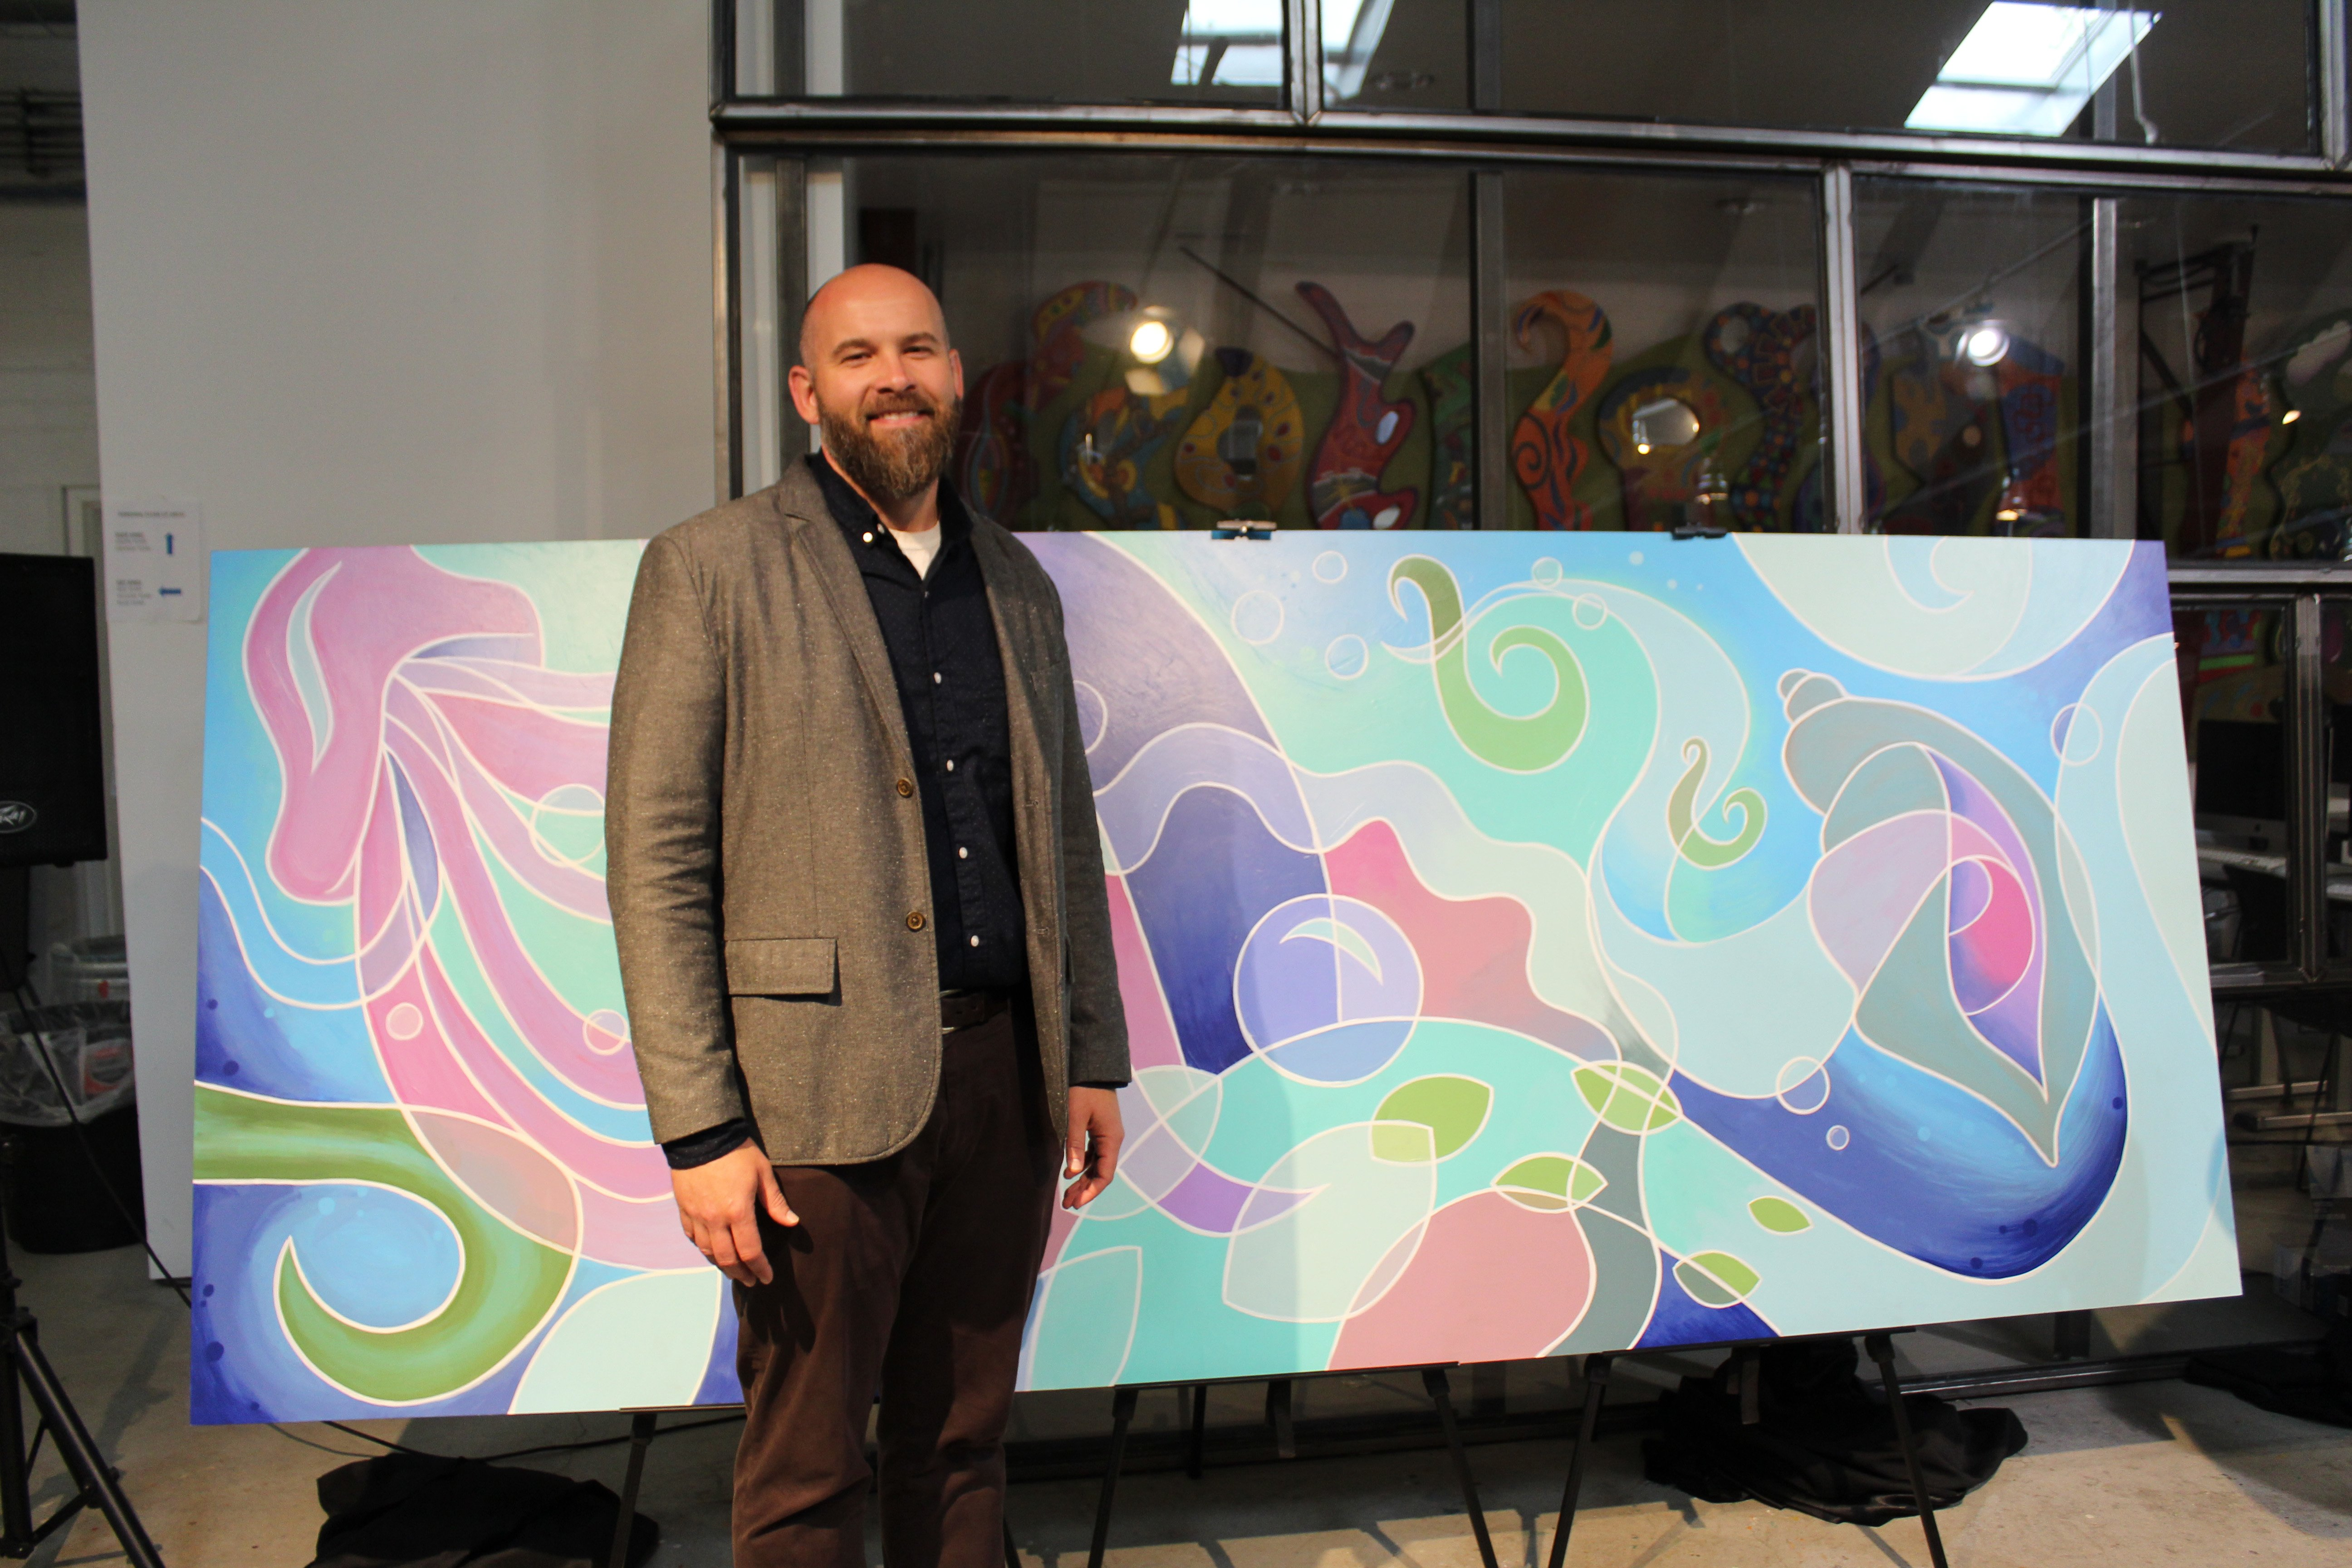 Derrick Hurst stands next to mural created by Van Go artists